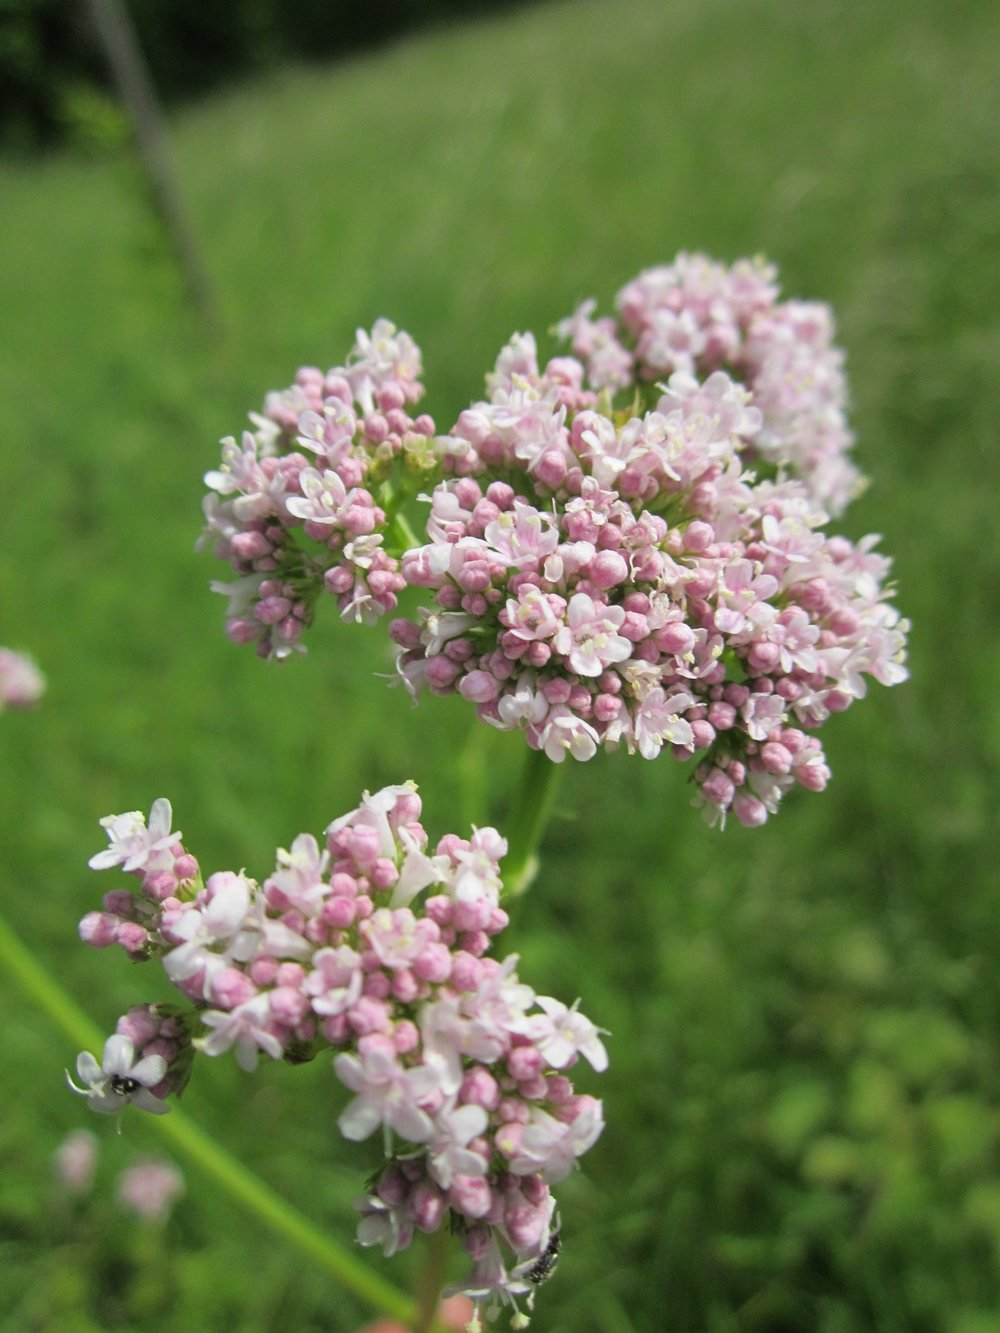 A nice synopsis of the Valerian plant - http://www.herbwisdom.com/herb-valerian.html